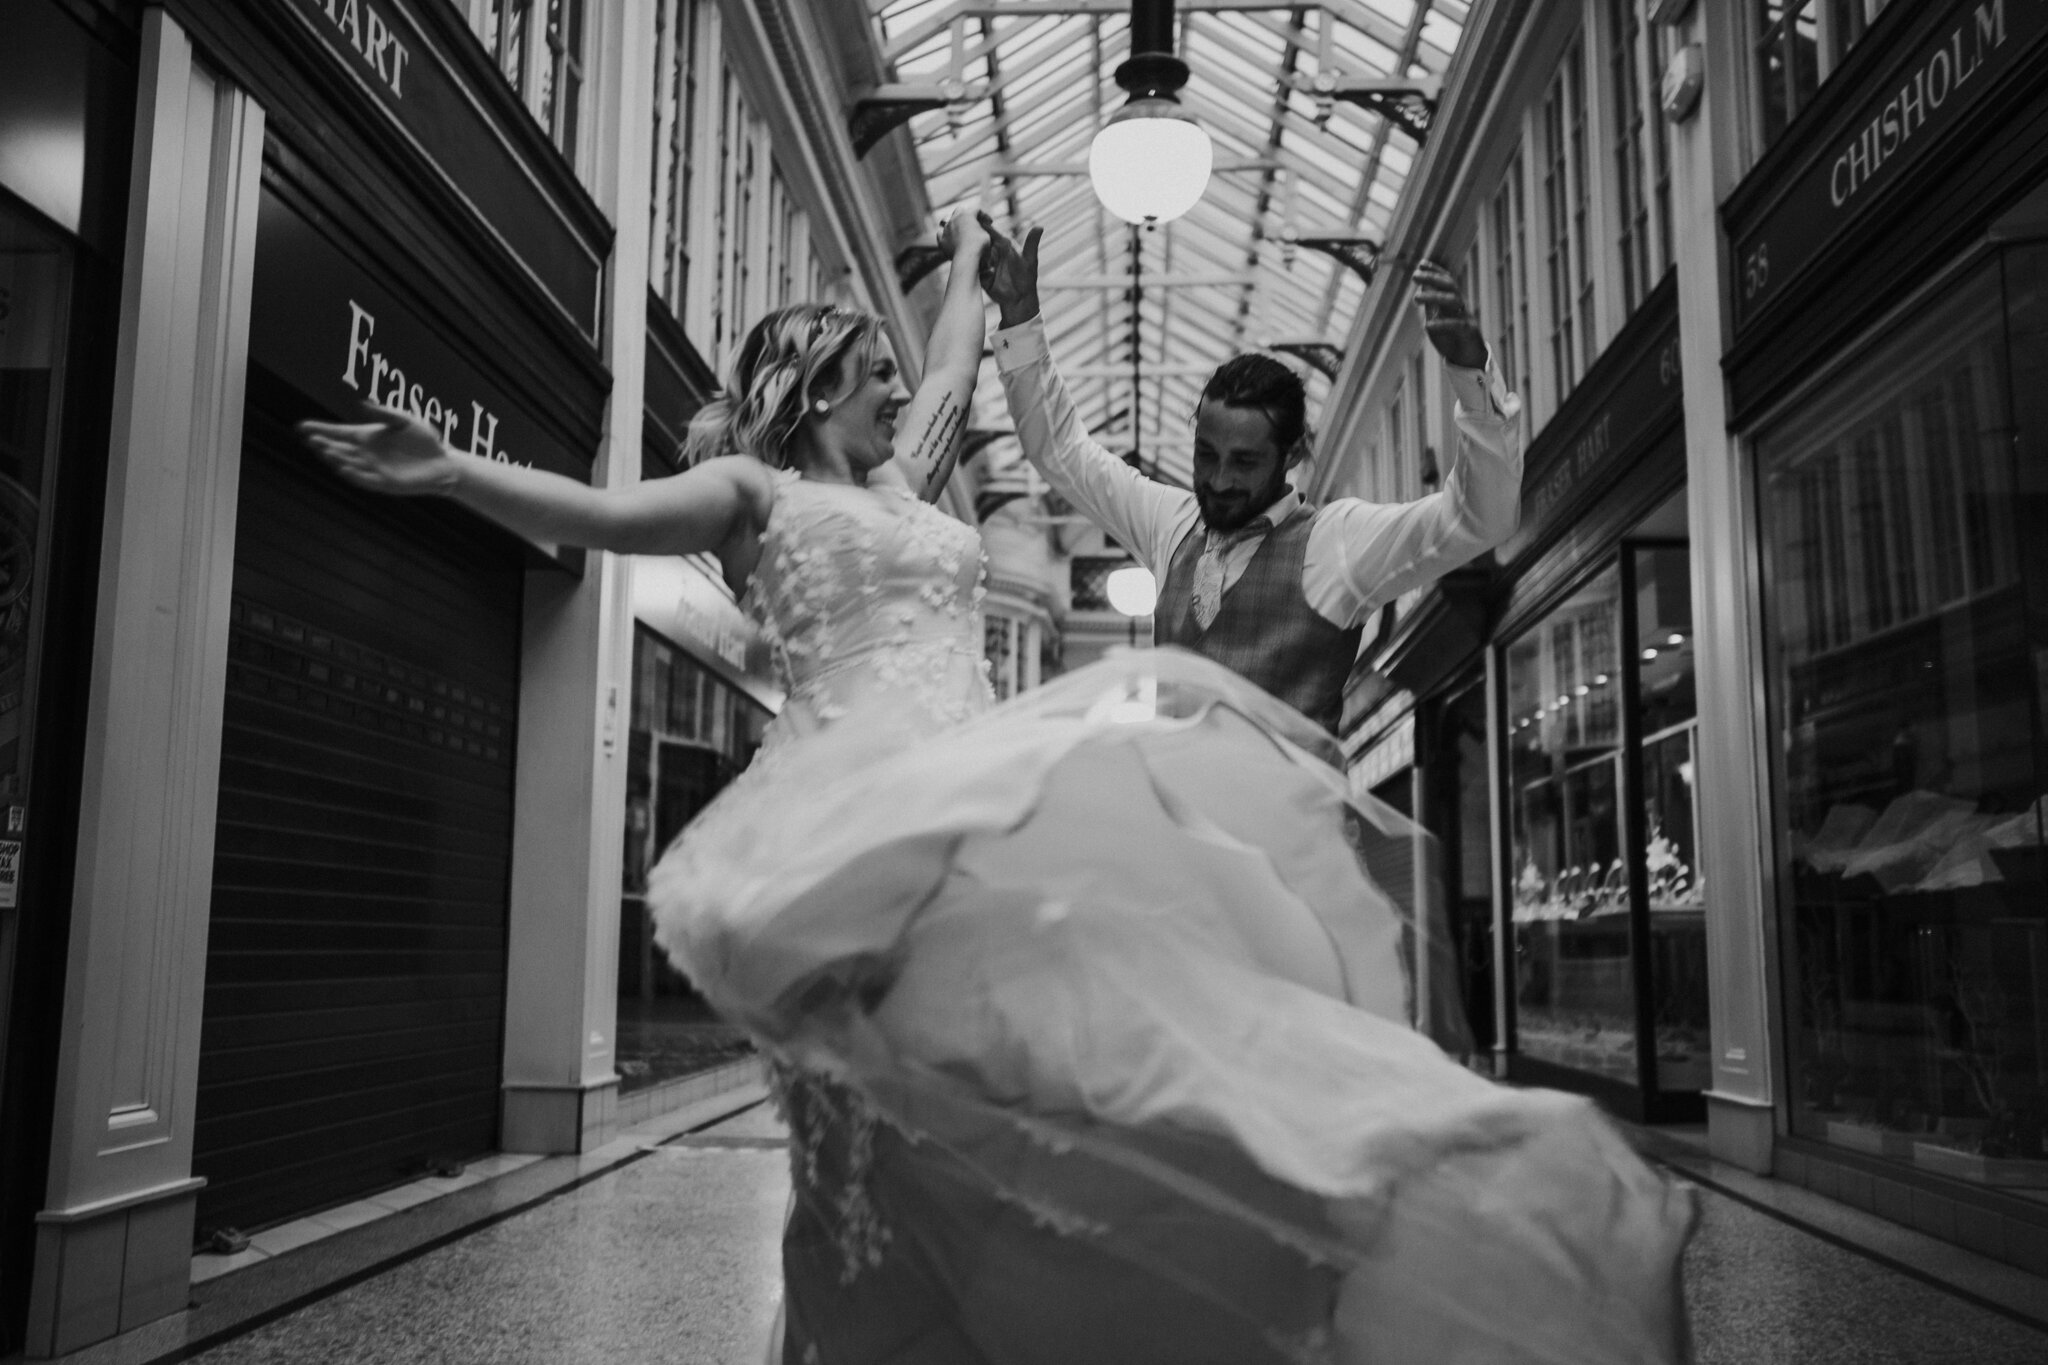 A wedding dress splash during the movement